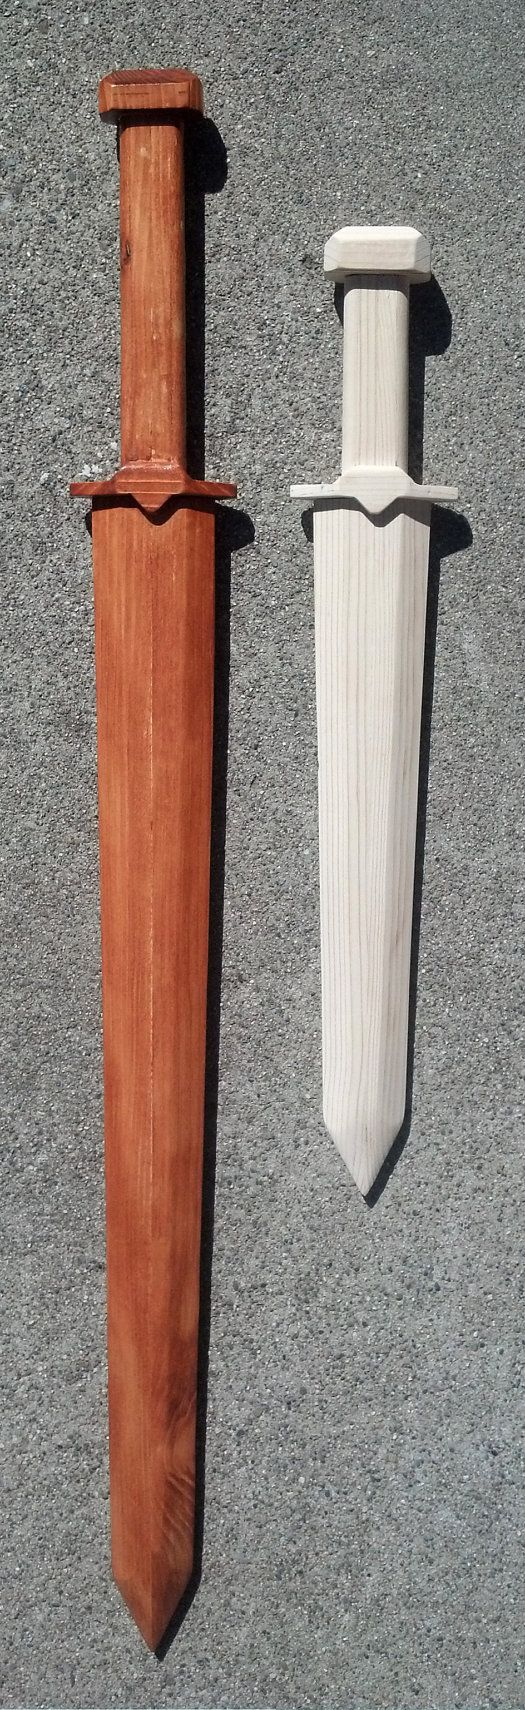 Wooden Long and Short Sword Raw or Stained by ChristopherMUnger, $25.00